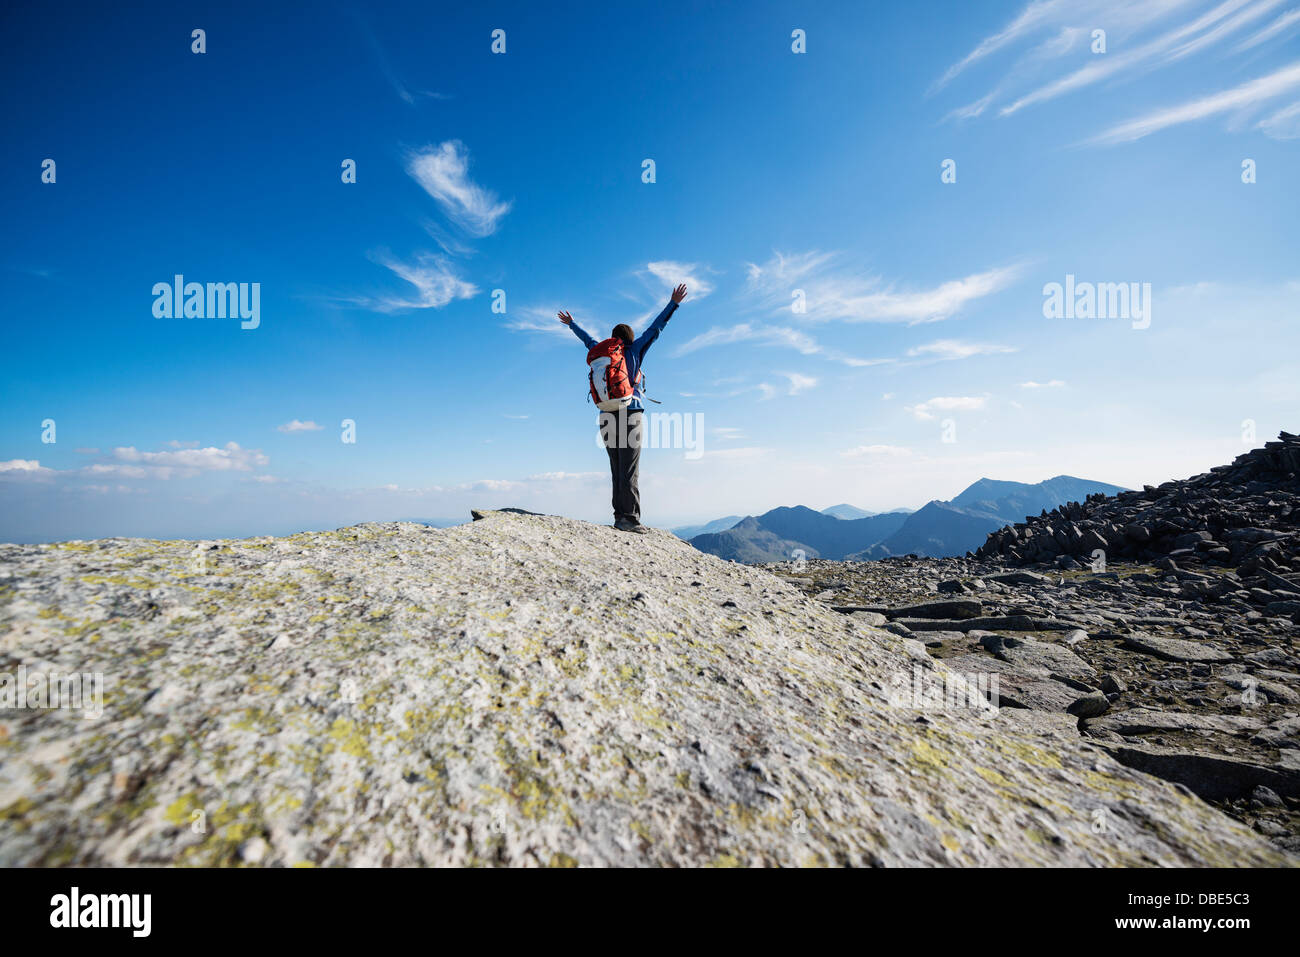 Female hiker on Cantilever stone, Glyder Fach, Snowdonia national park, Wales - Stock Image